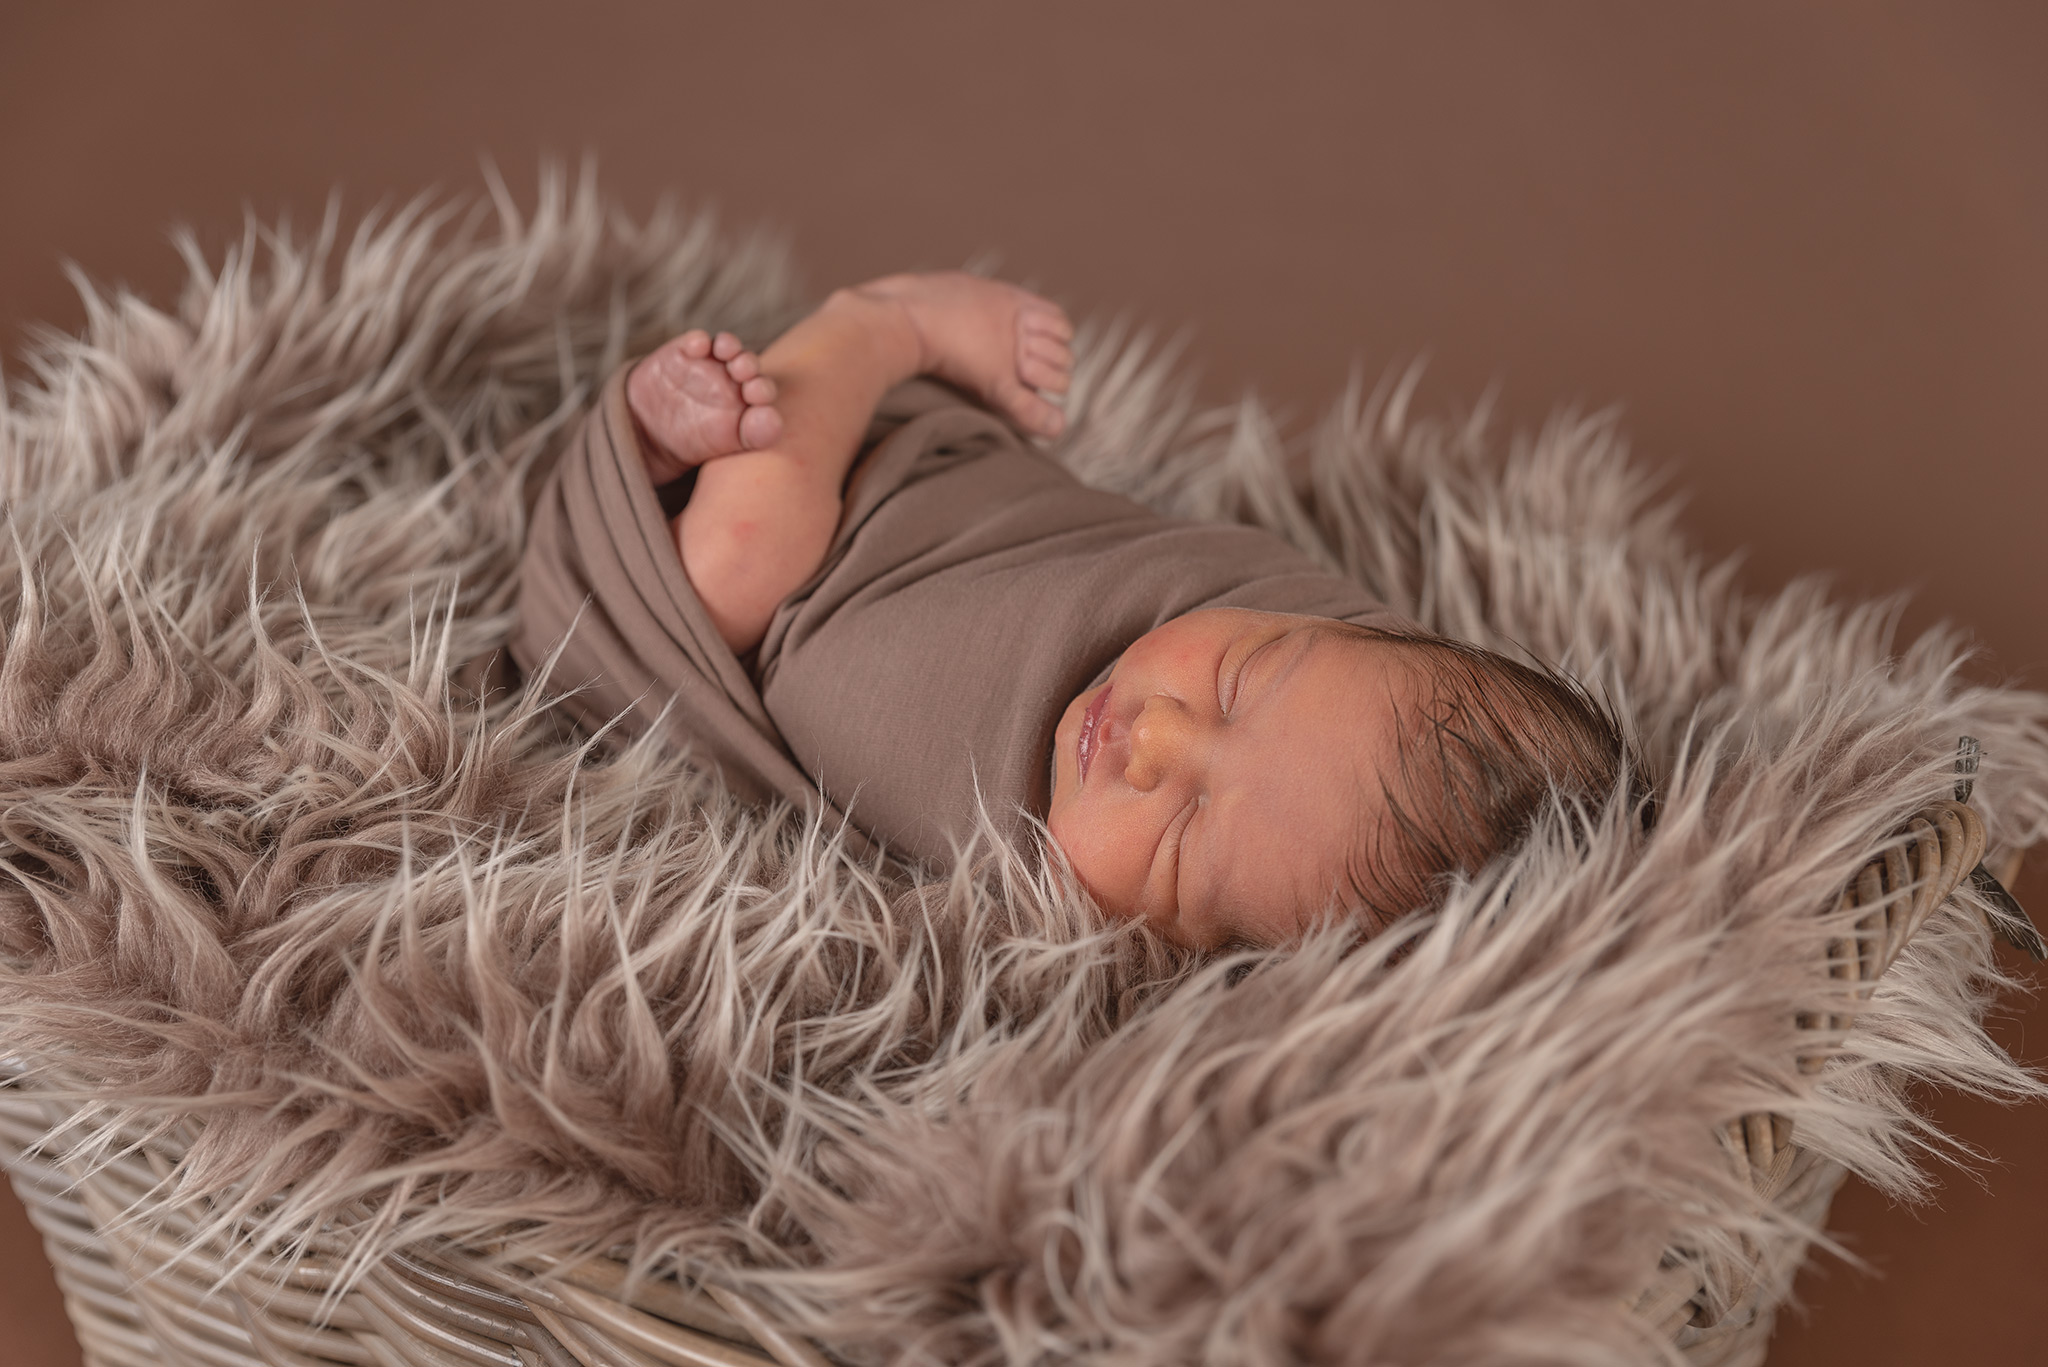 Brown fury blanket in a wicker basket with a newborn baby boy laying on his back wrapped in a brown fabric with feet showing. Baby is sleeping and the background is brown